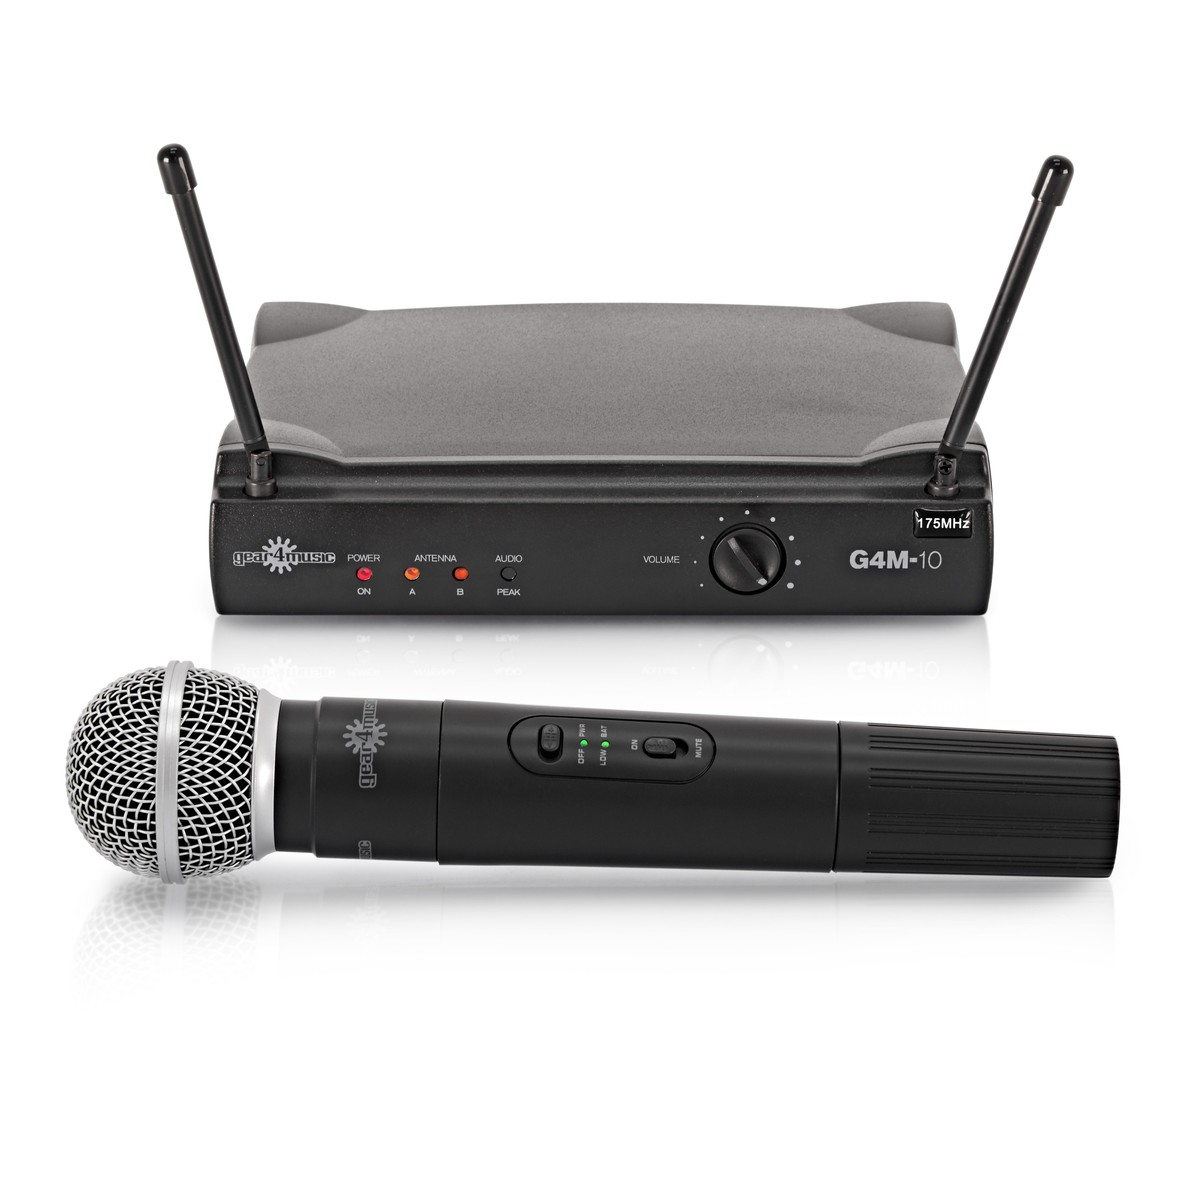 single handheld wireless microphone system by gear4music b stock at gear4music. Black Bedroom Furniture Sets. Home Design Ideas